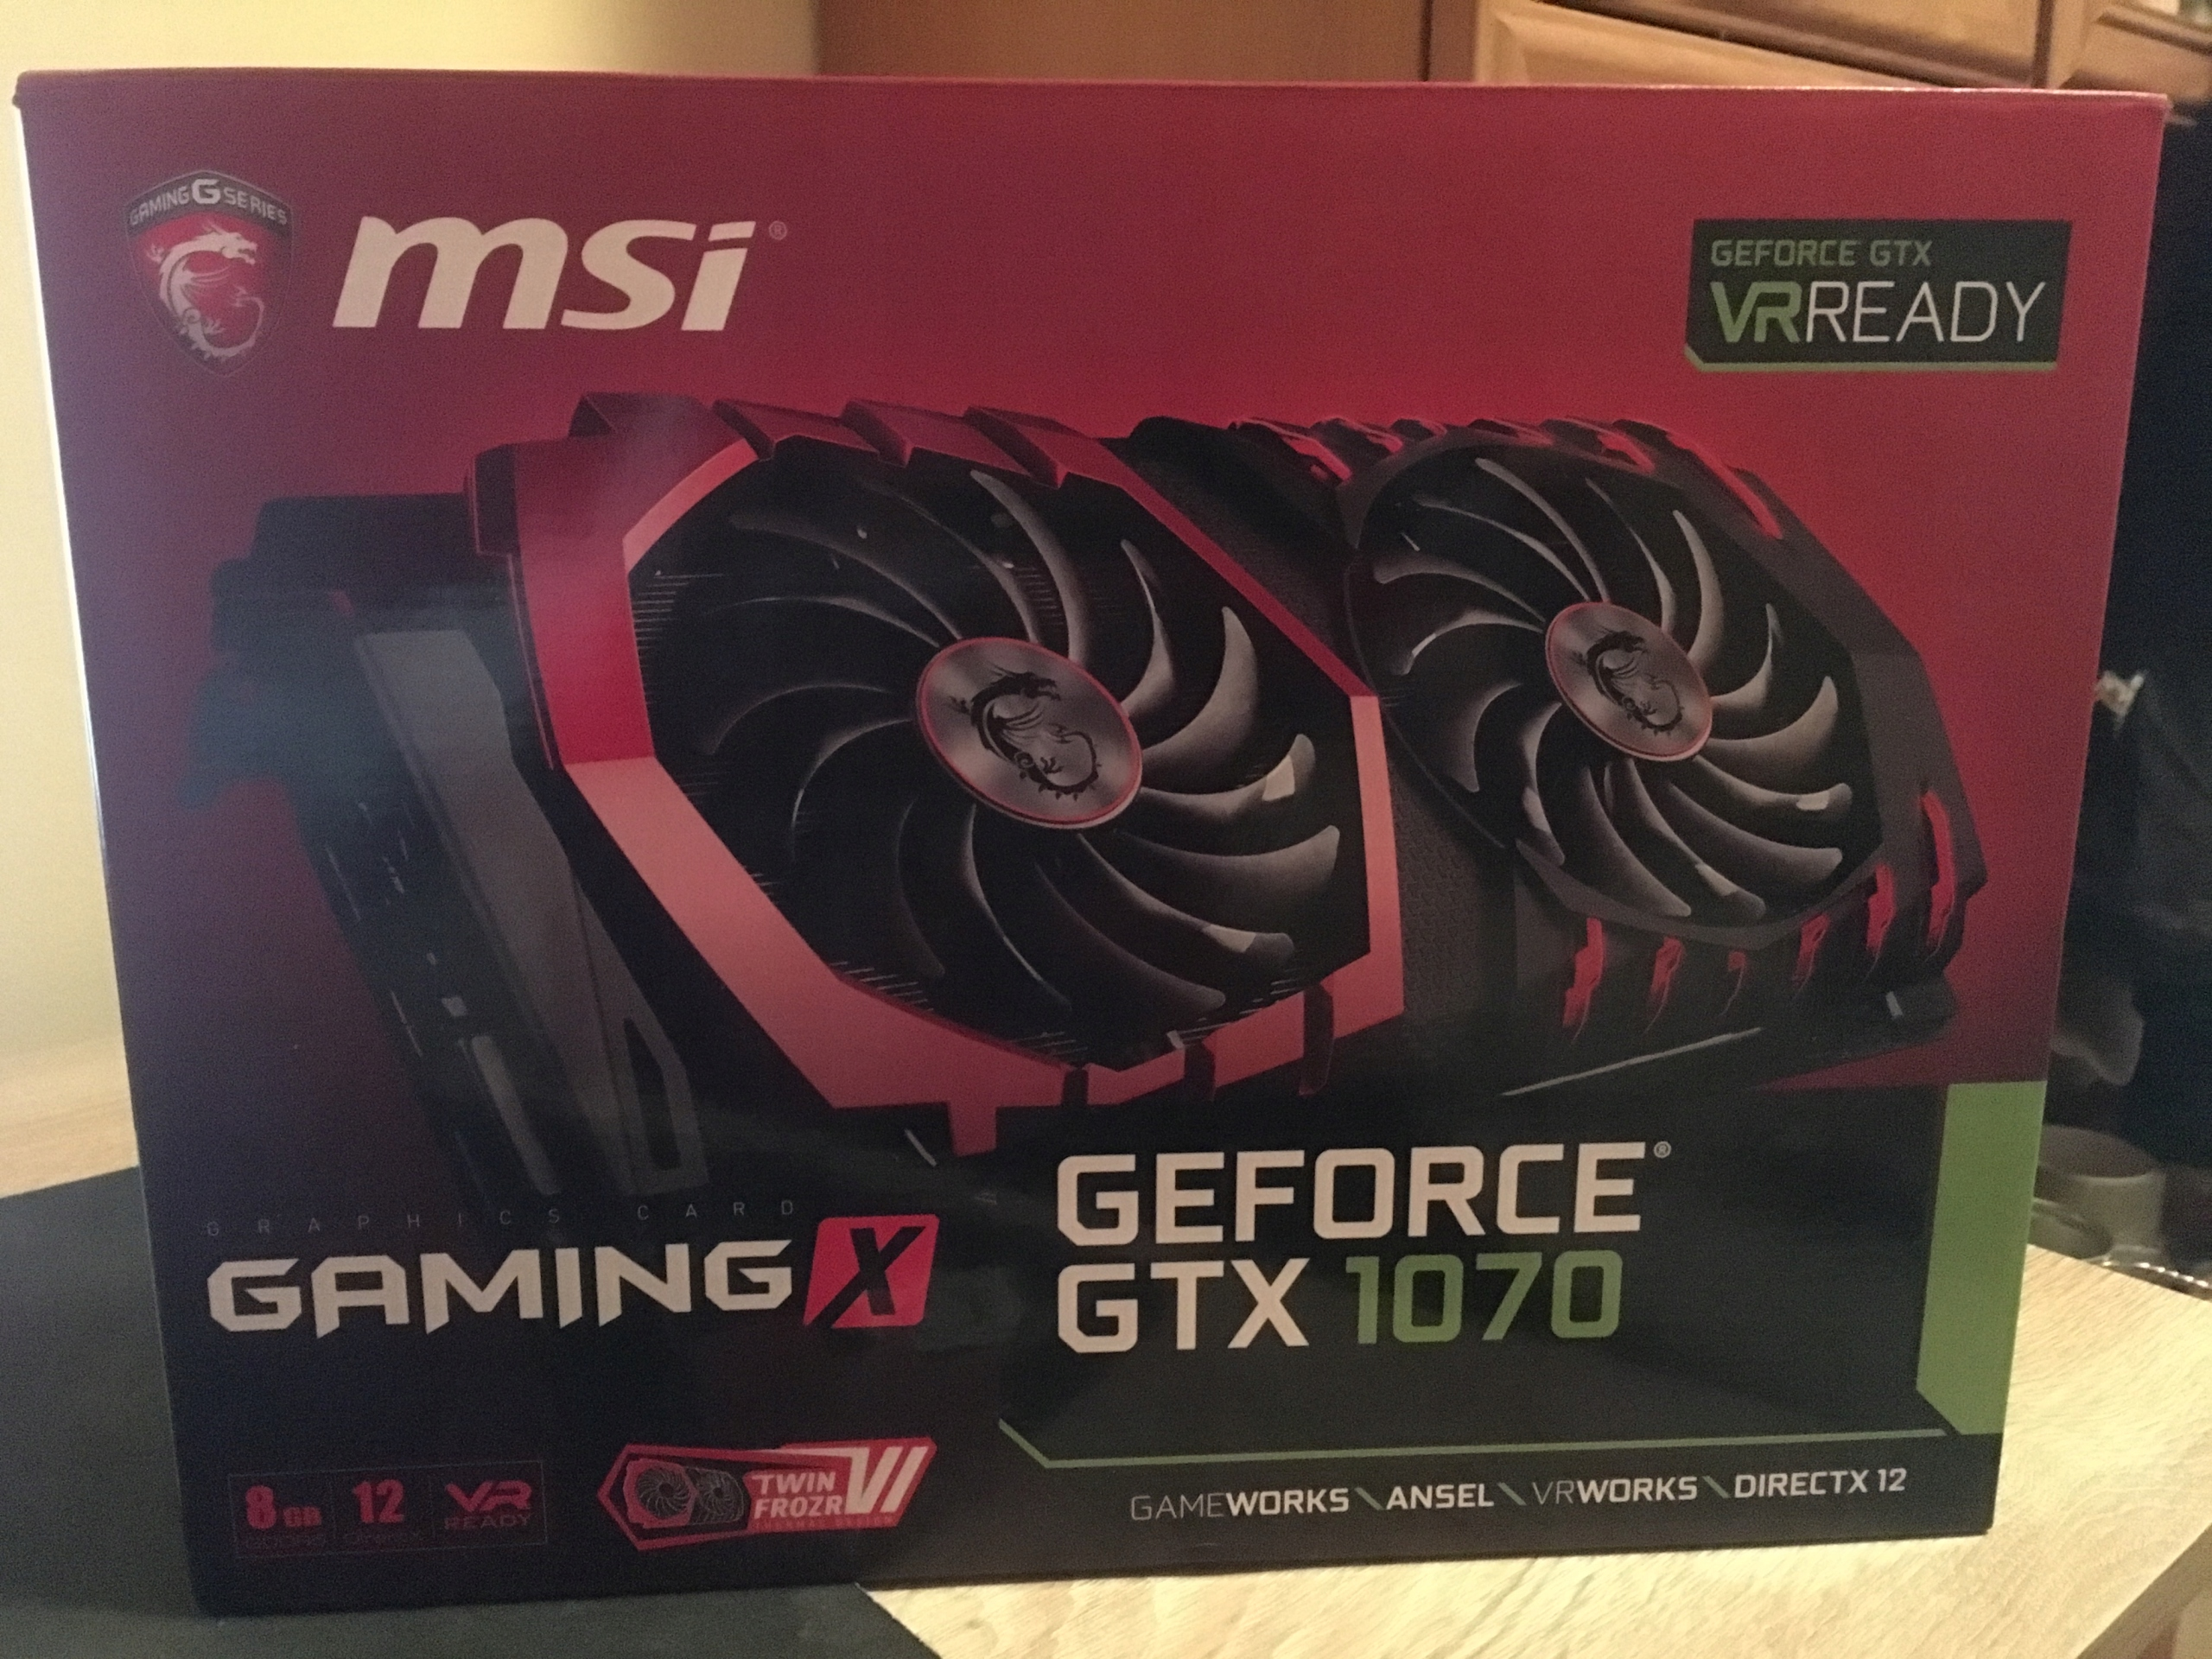 Karta graficzna MSI Geforce GTX 1070 TI 8GB Gwaran